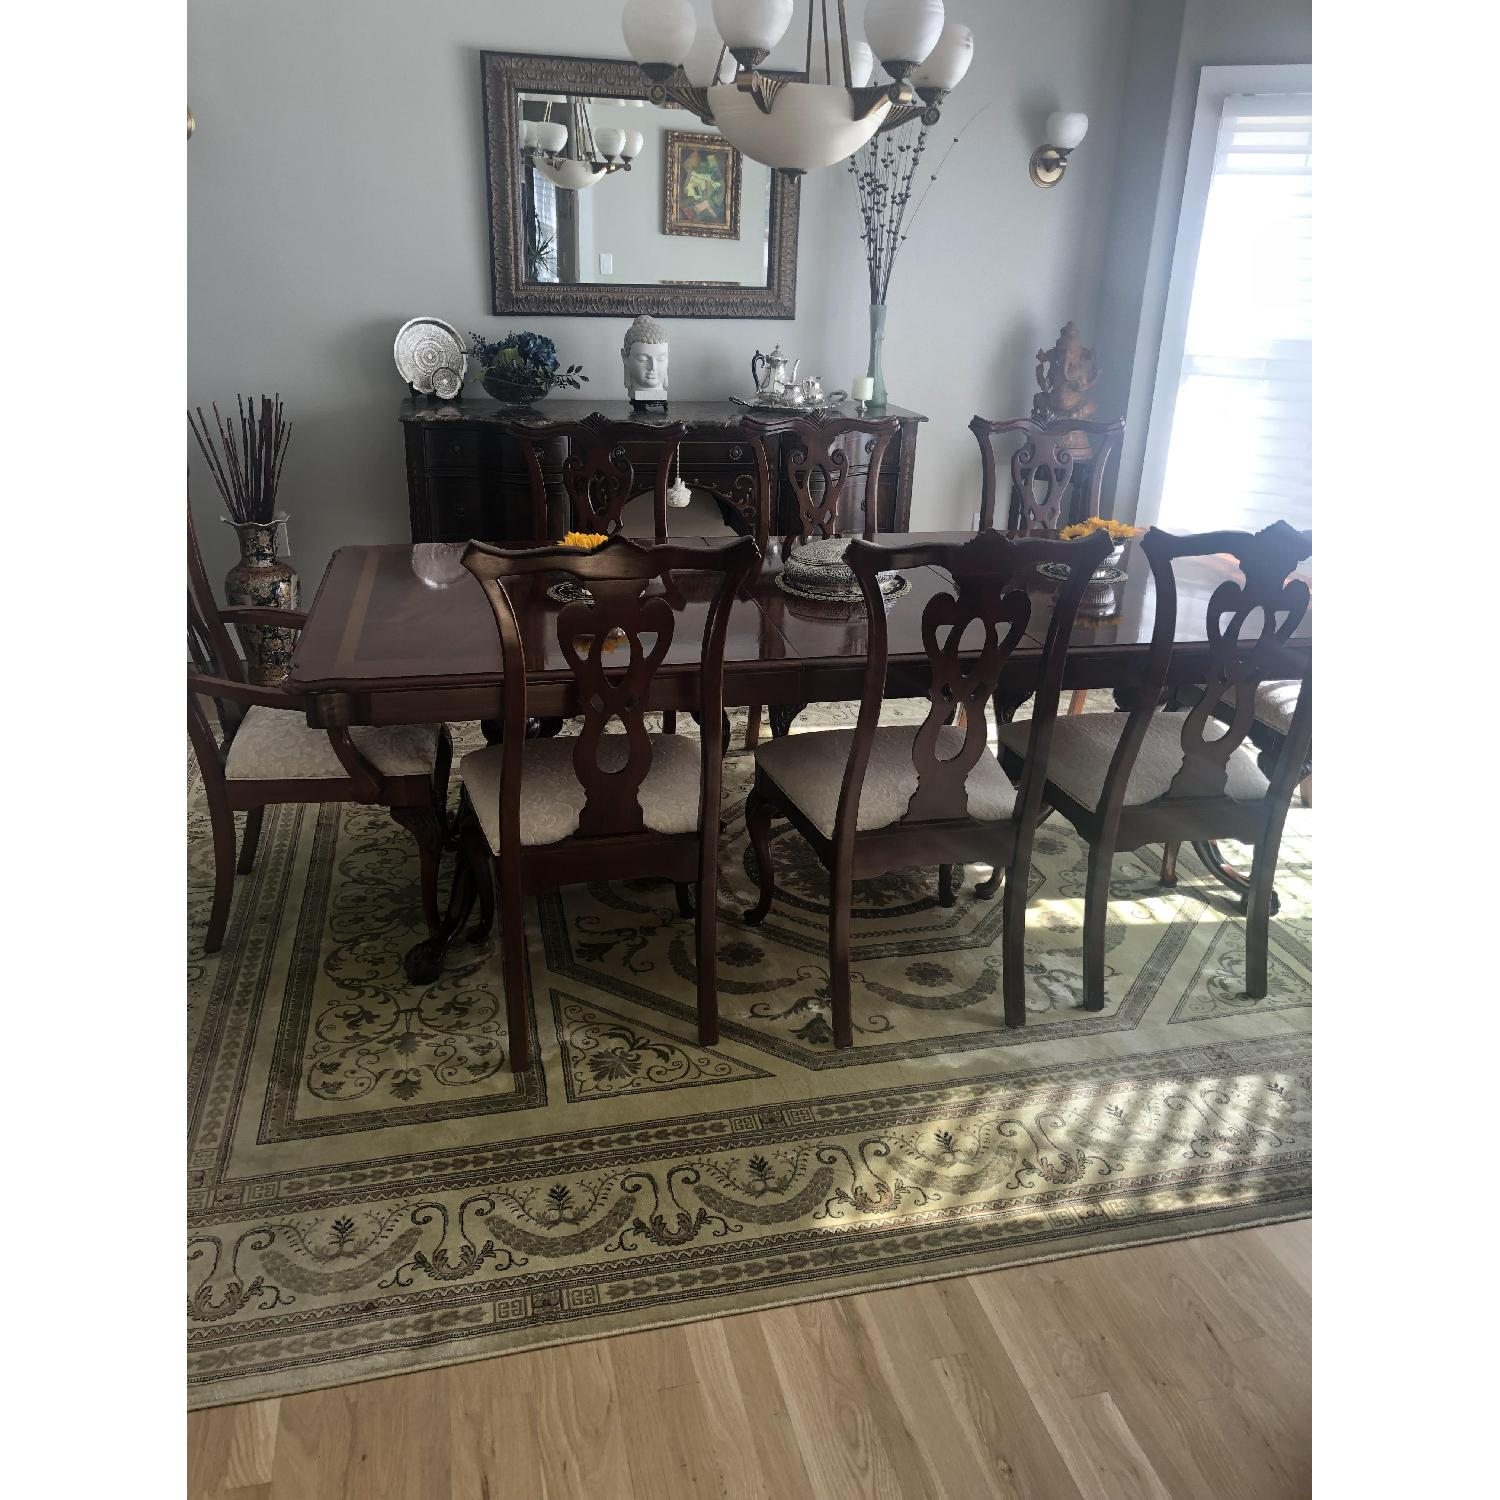 Thomasville Mahogany Dining Table w/ 8 Chairs - image-2